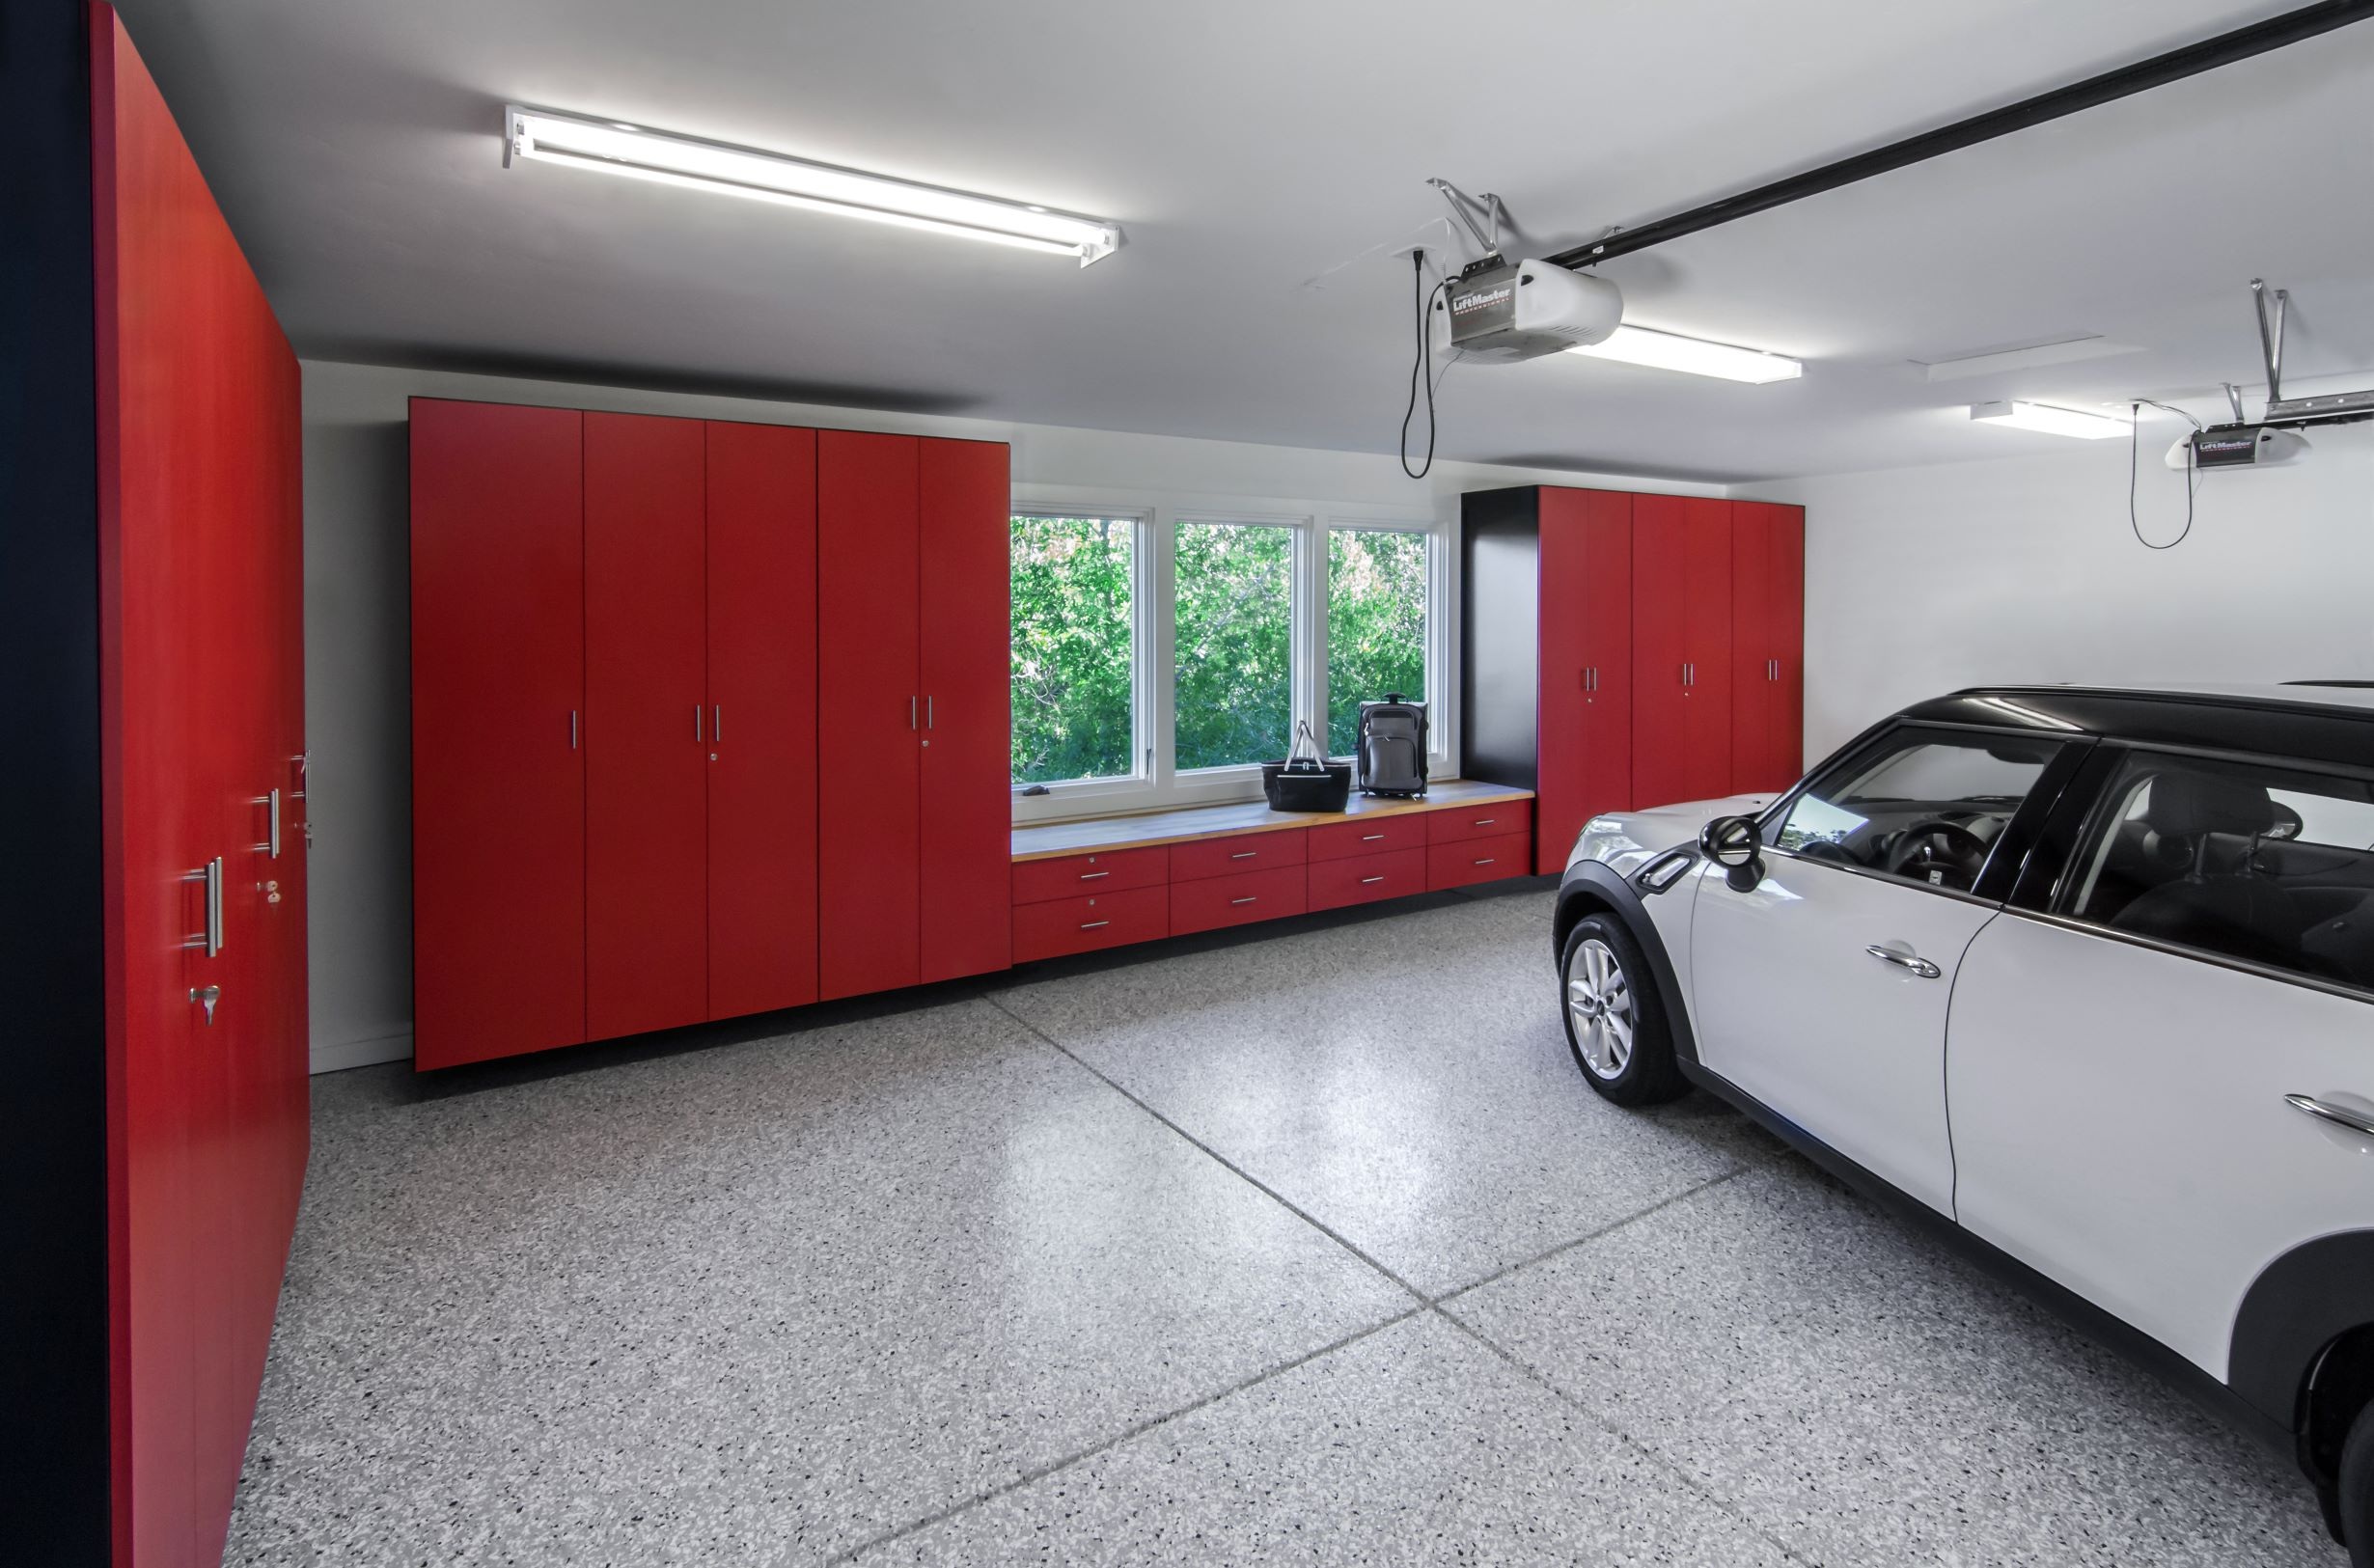 2013-01-19_Garage_Black with Red HPL Fronts_Yosemite Epoxy-PX